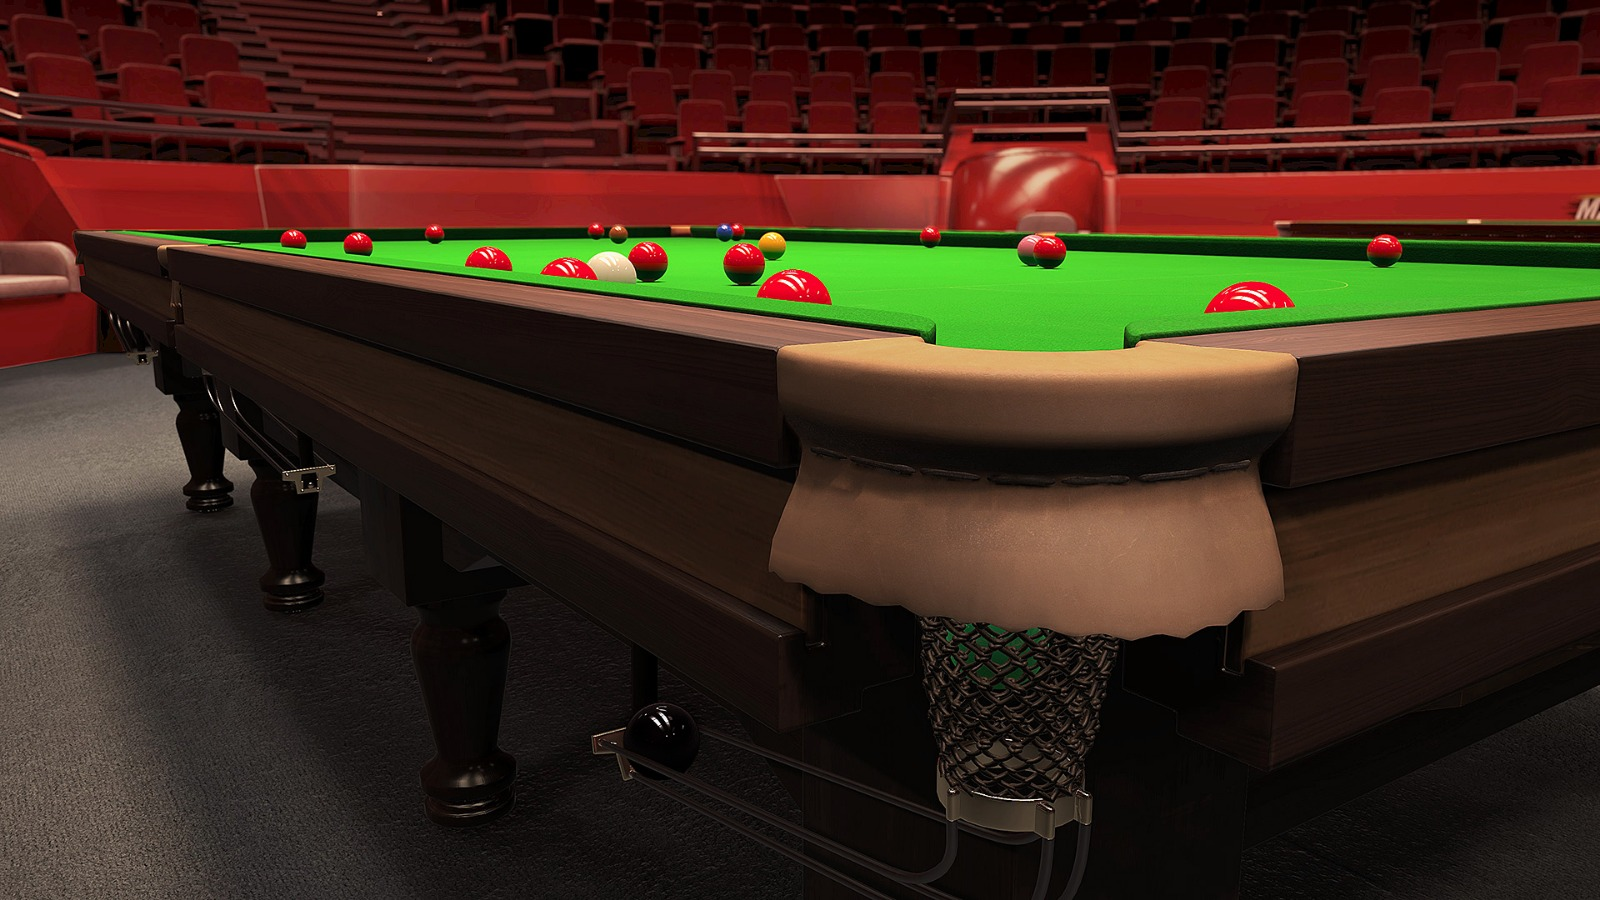 This is Snooker